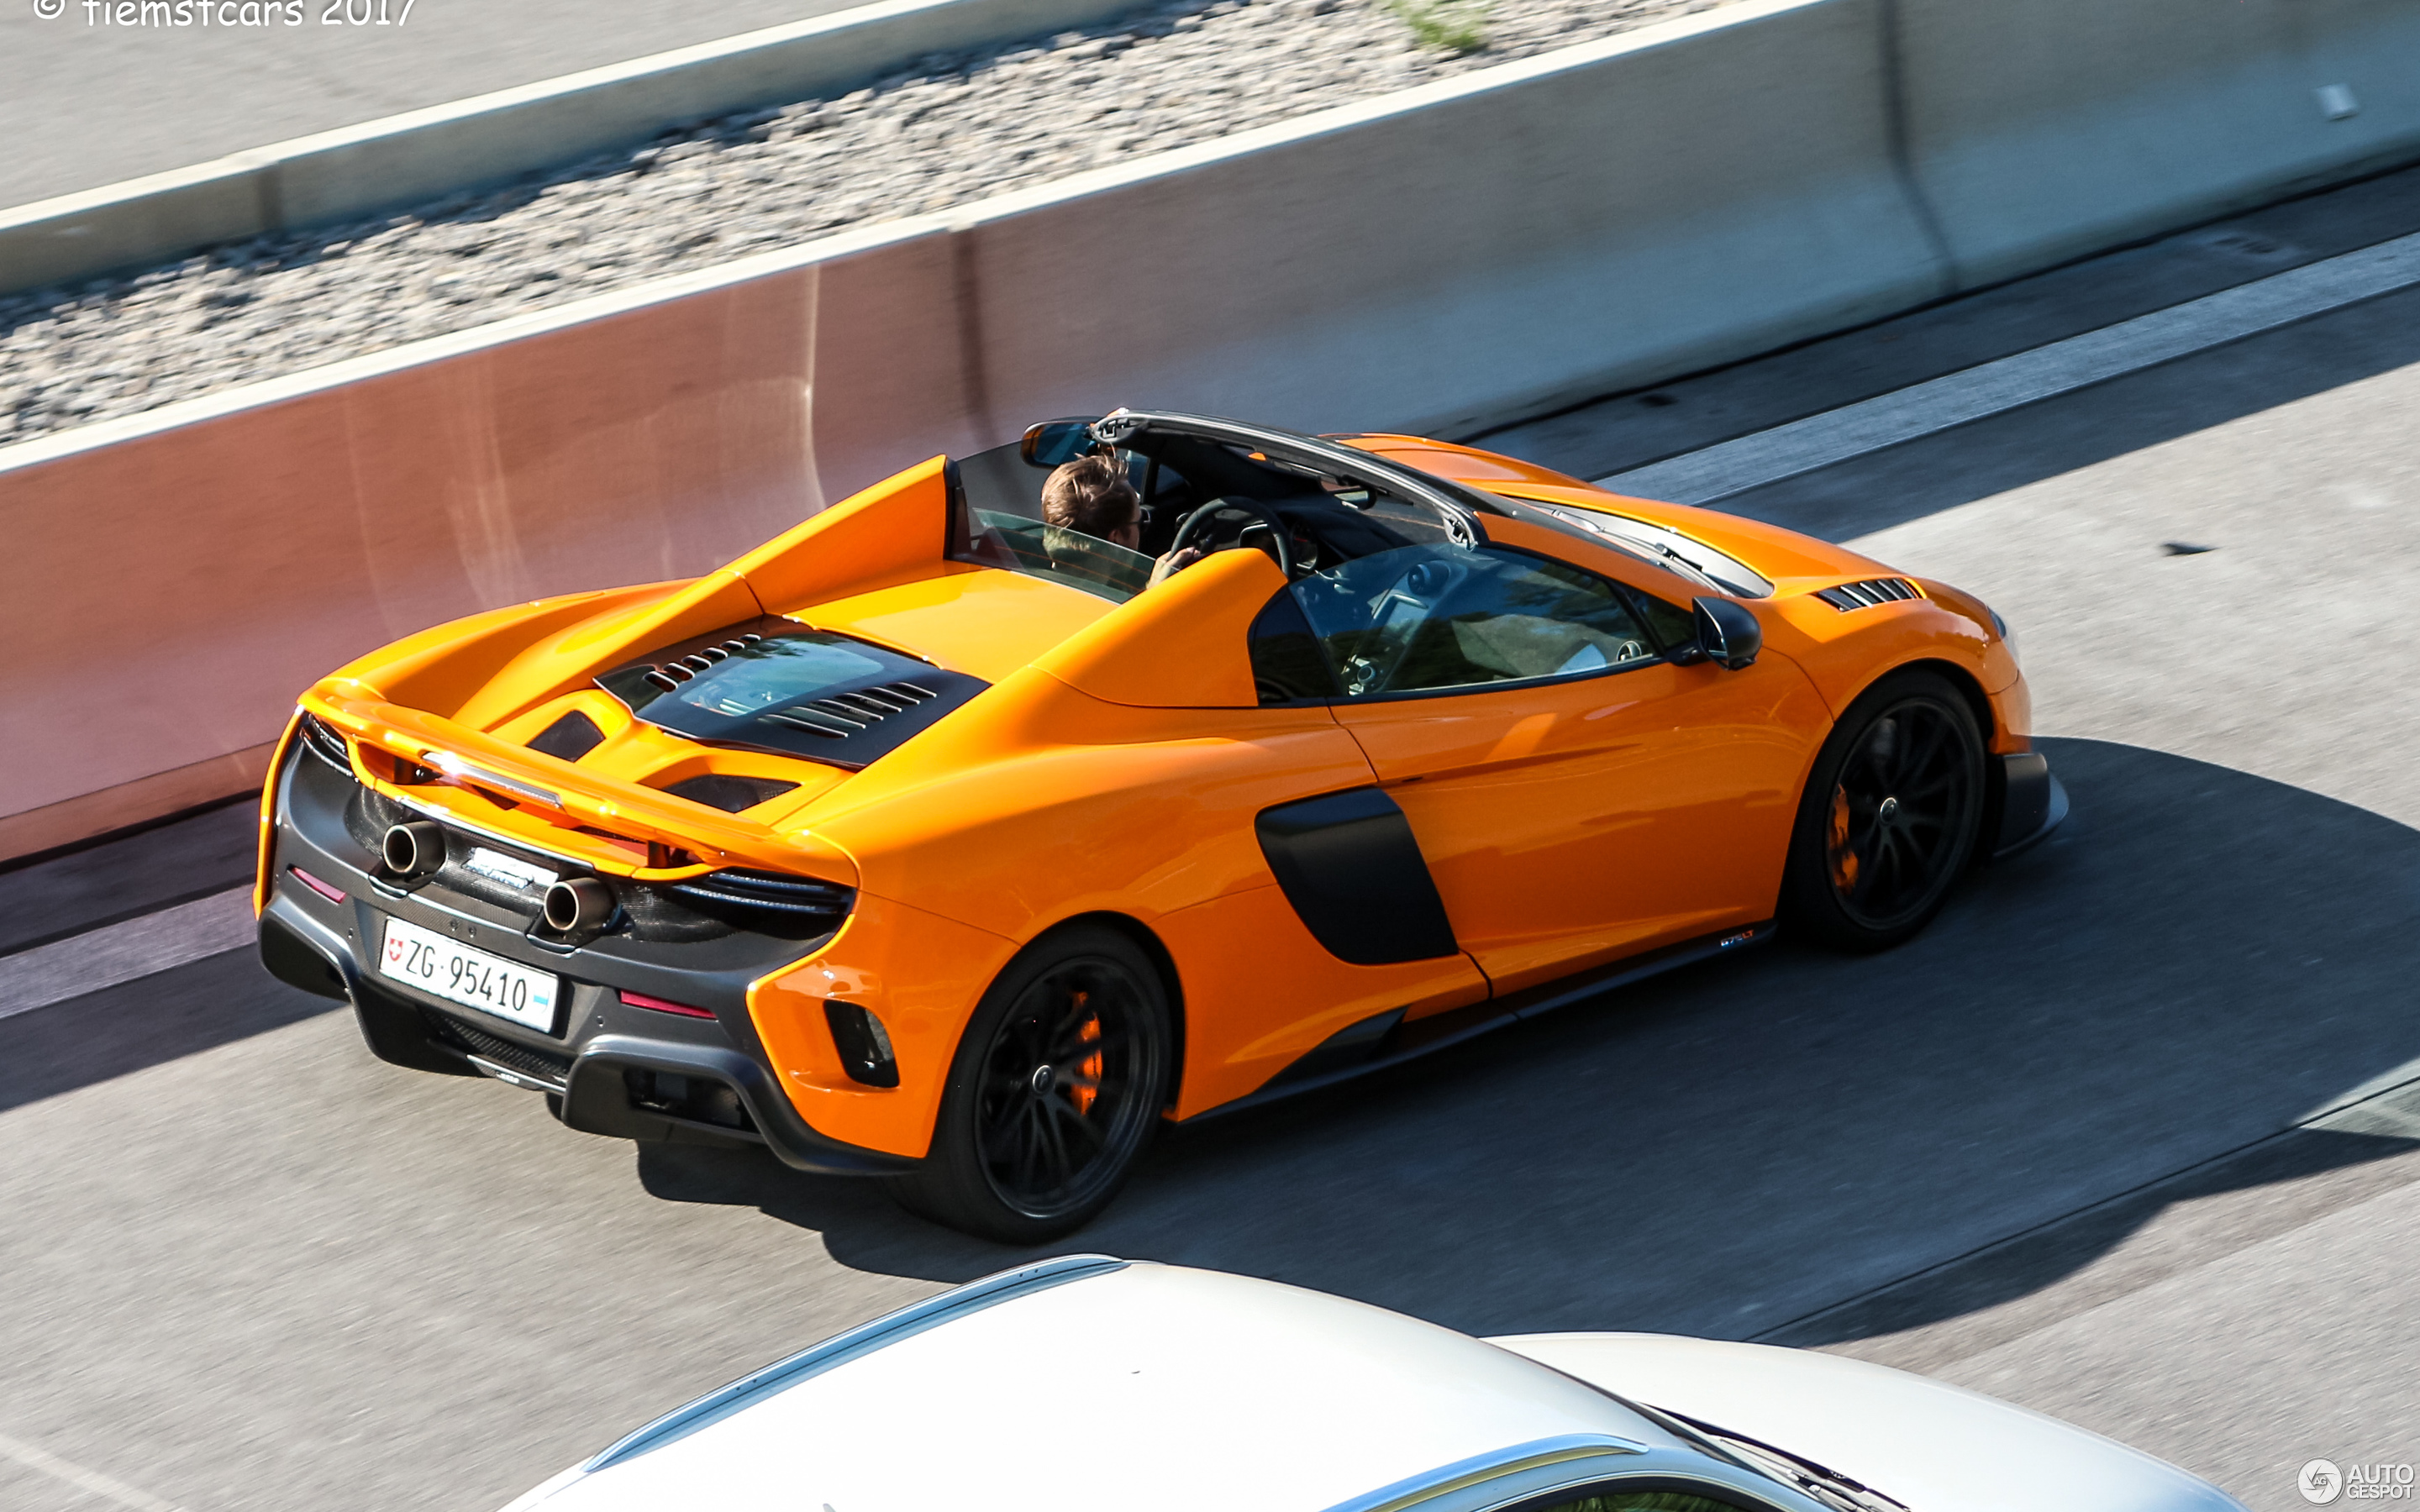 McLaren 675LT Spider - 5 July 2017 - Autogespot